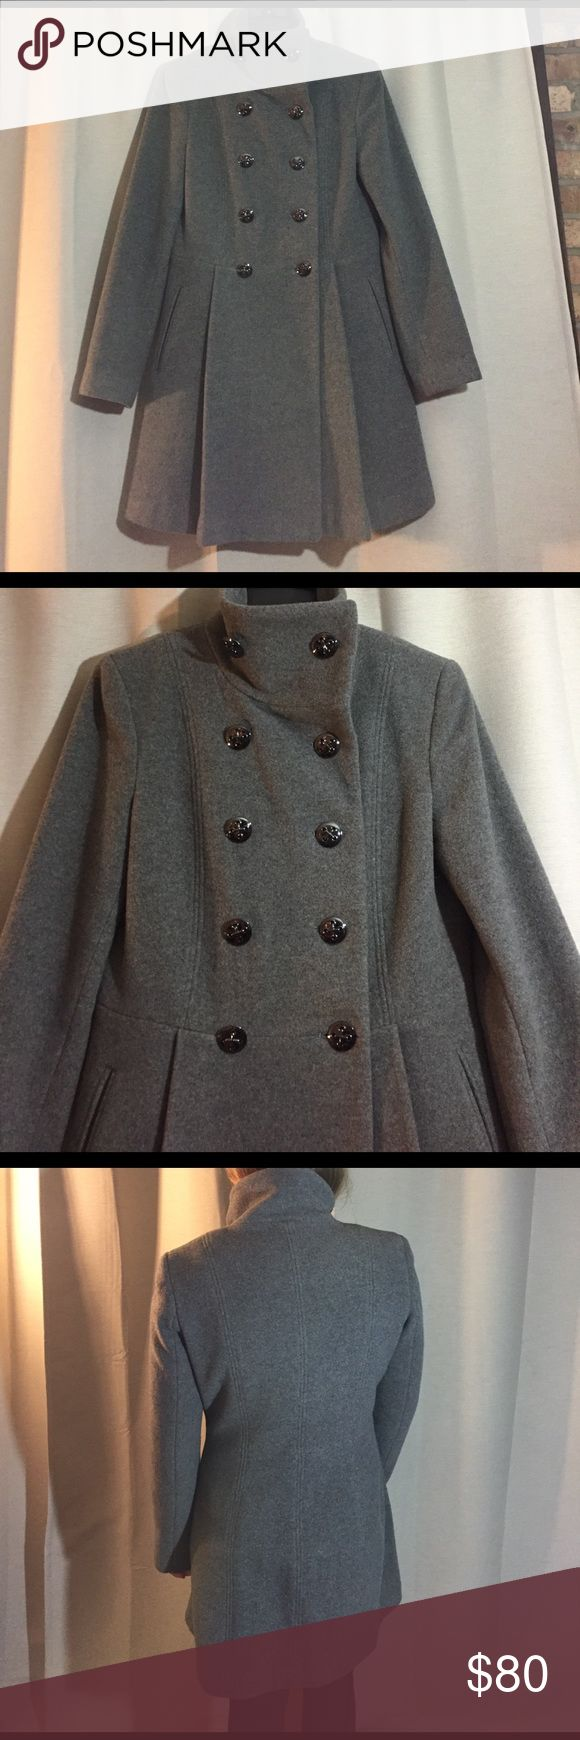 Calvin Klein Grey Pea Coat size 2 great condition Calvin Klein Grey Pea Coat size 2 great condition. Double breasted. Chrome buttons. Model is 5'2 height. Calvin Klein Jackets & Coats Pea Coats